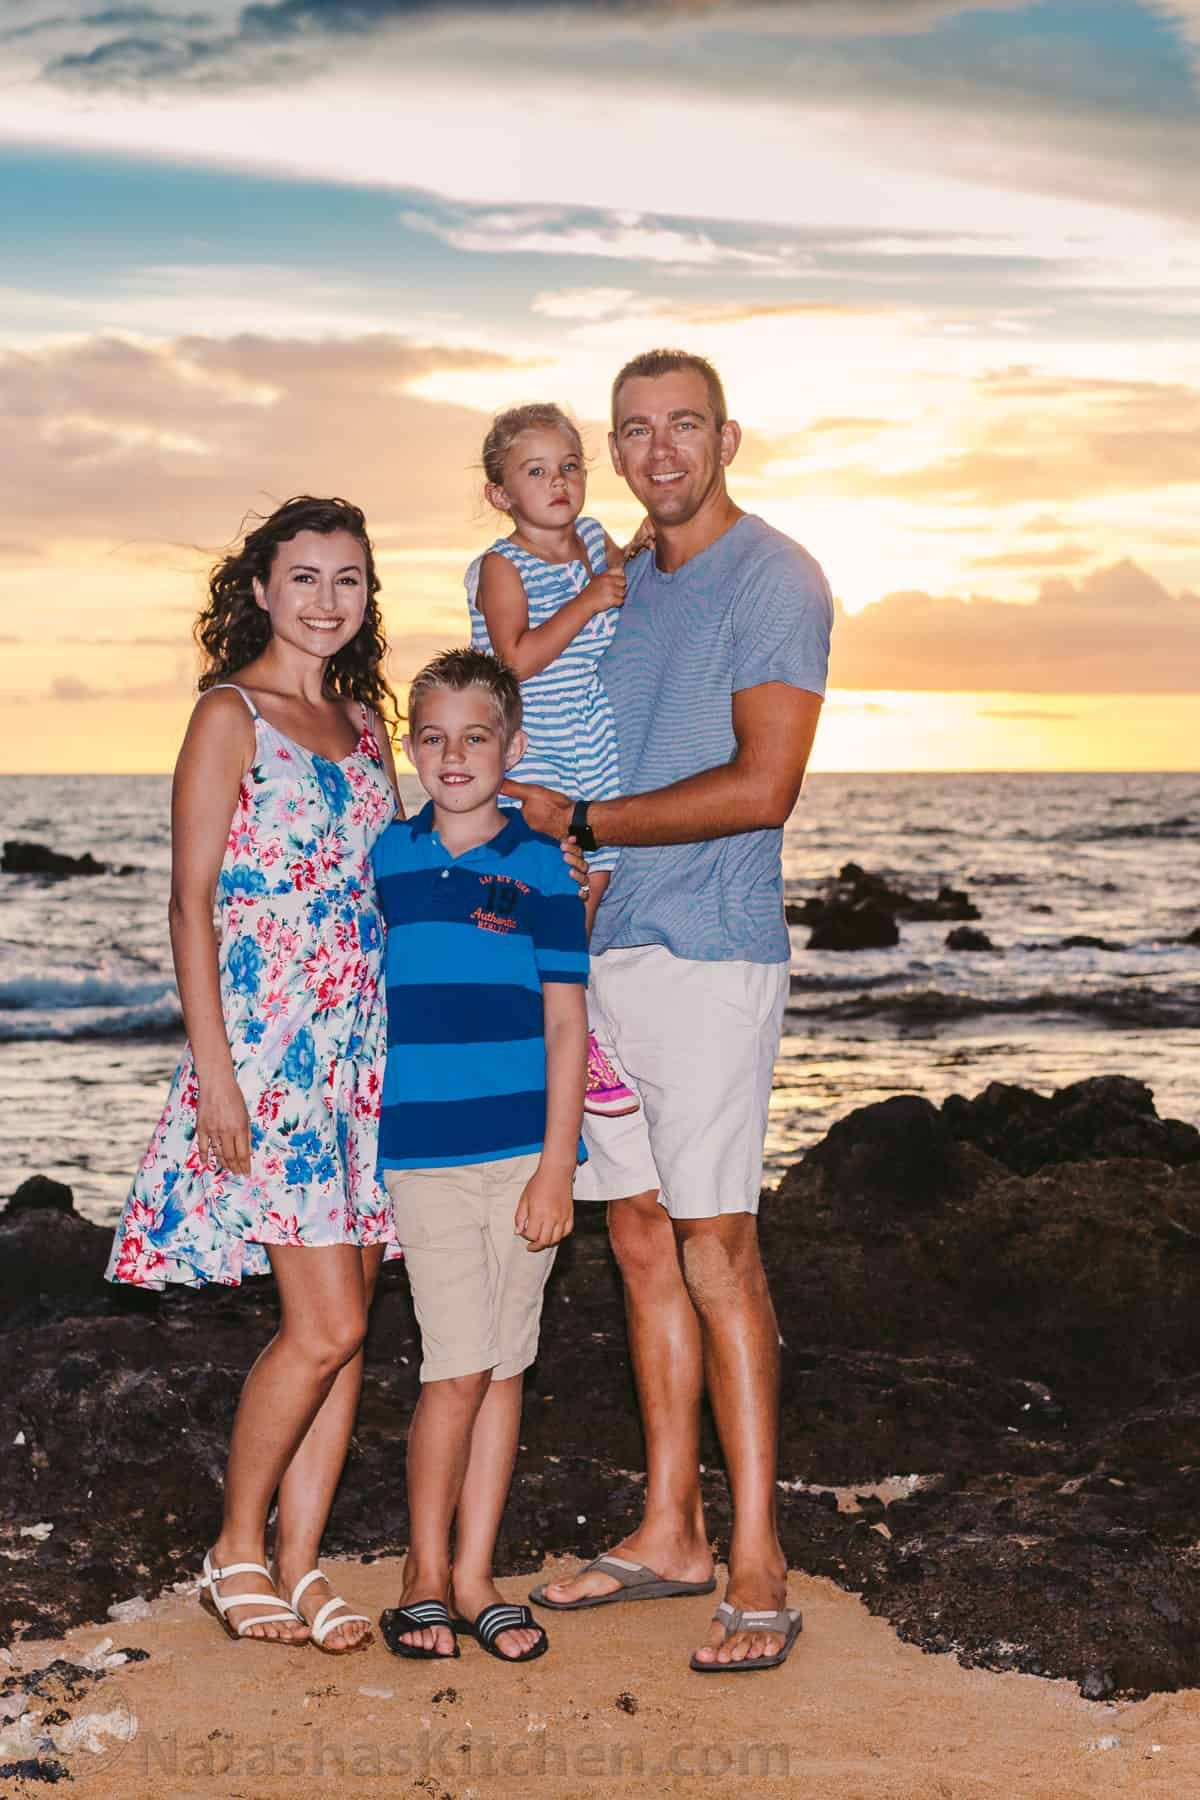 Maui Family Vacation Video